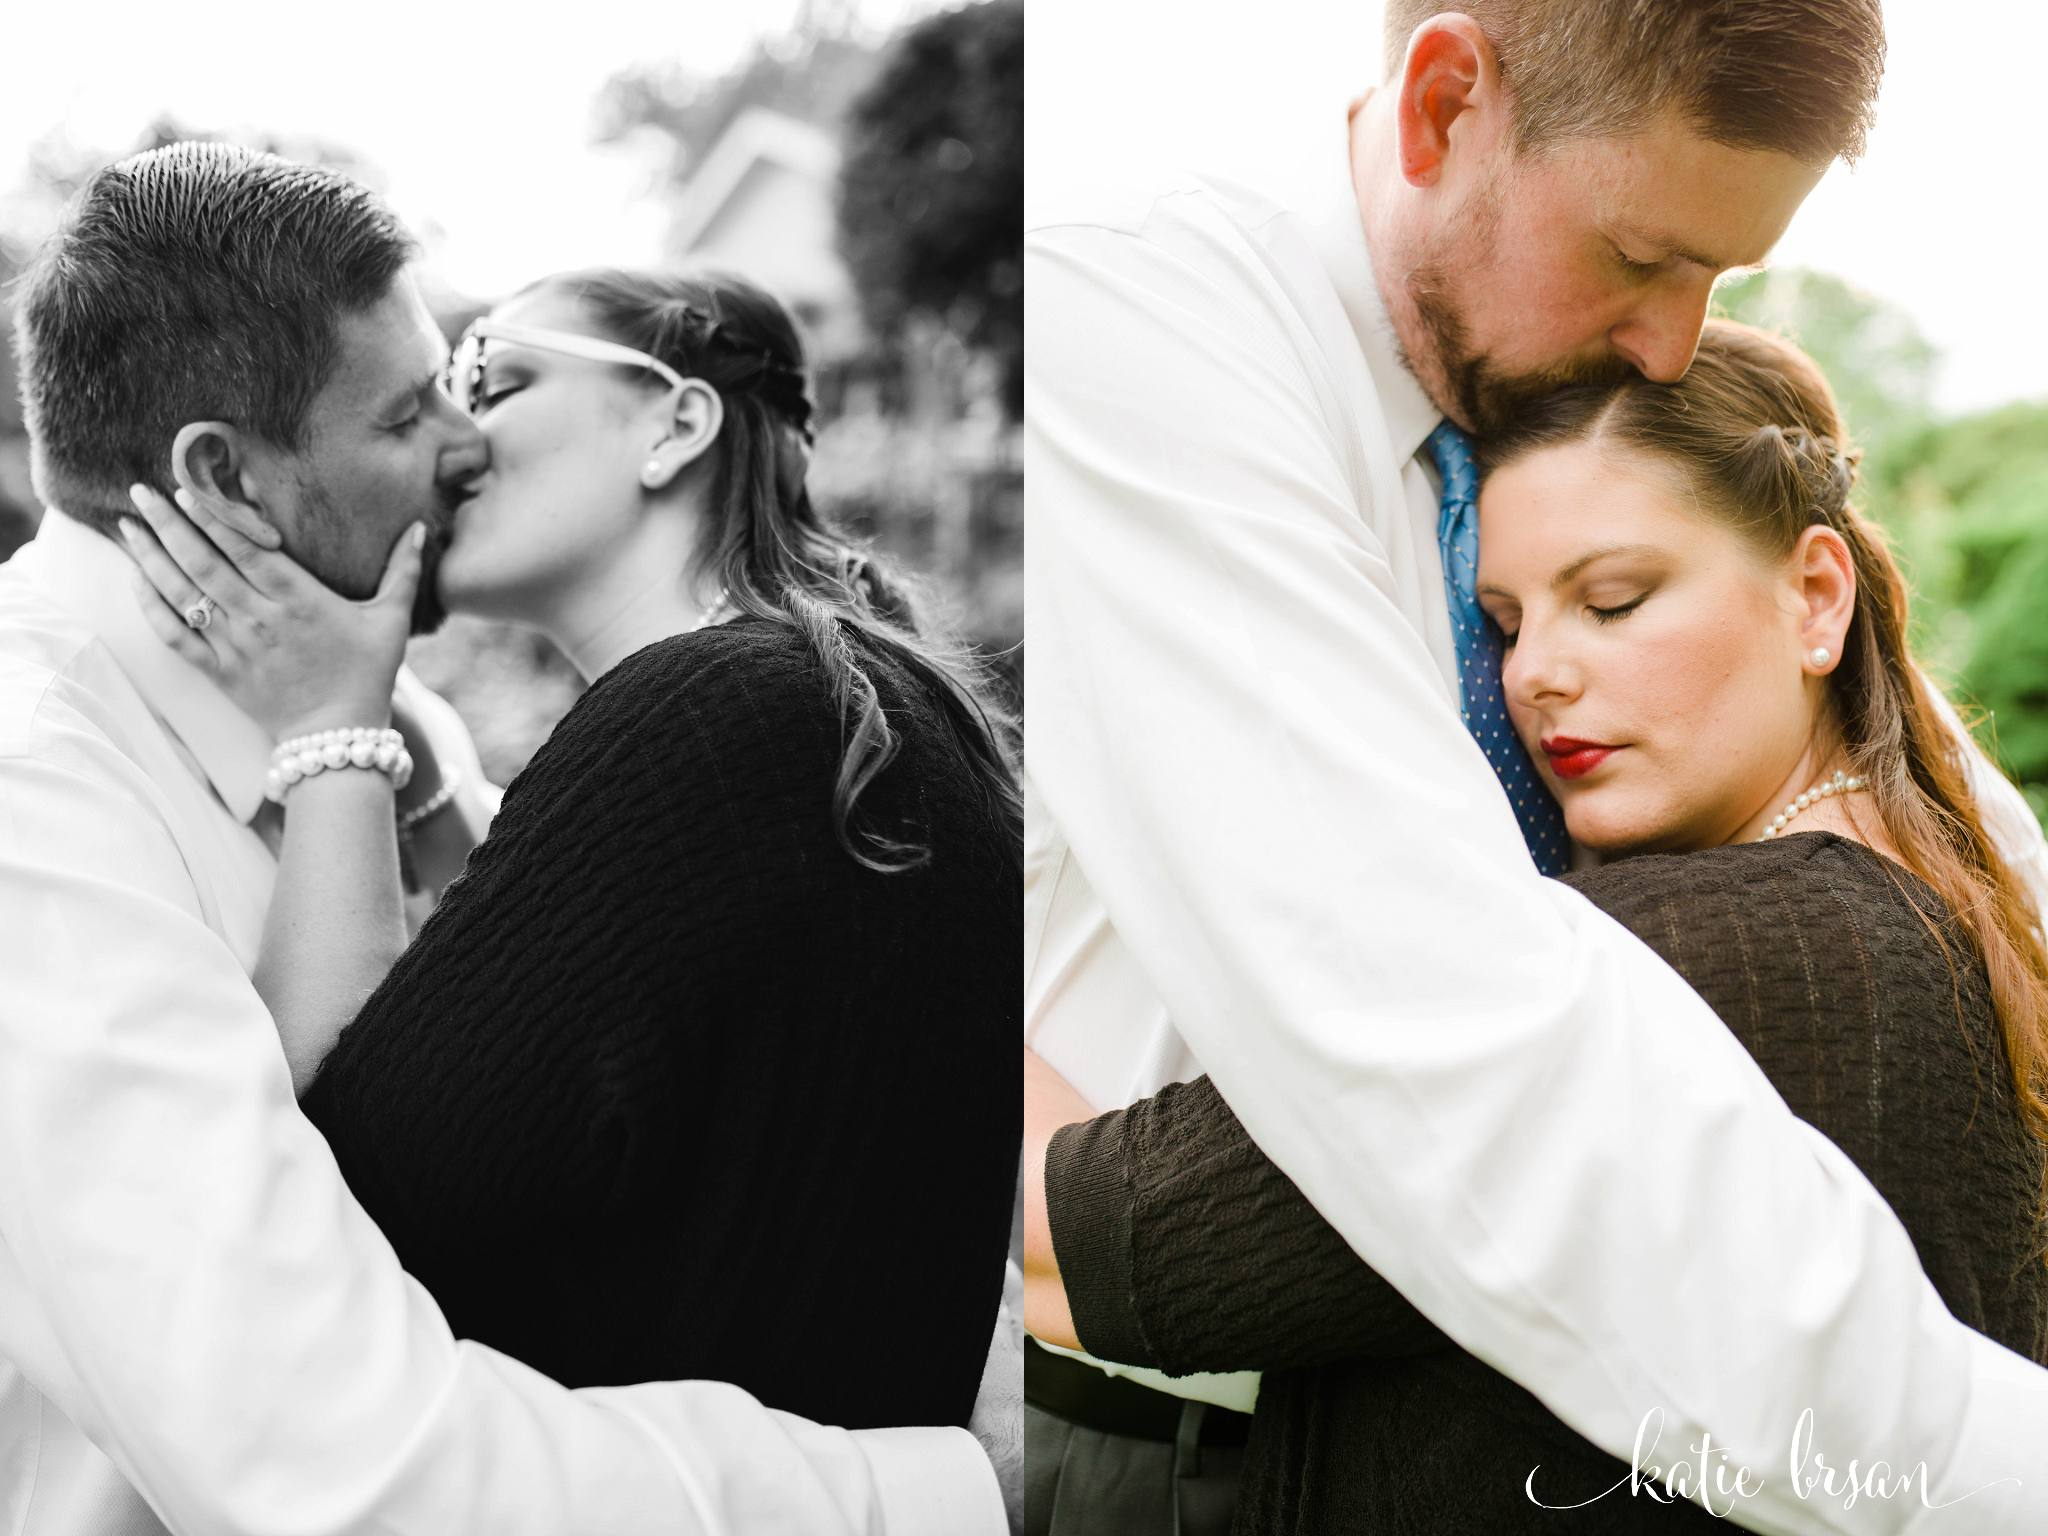 KatieBrsan-HomerGlen-NewLenox-EngagementSession-HadleyValley-TeacherEngagementSession-ChicagoWeddingPhotographer_0581.jpg